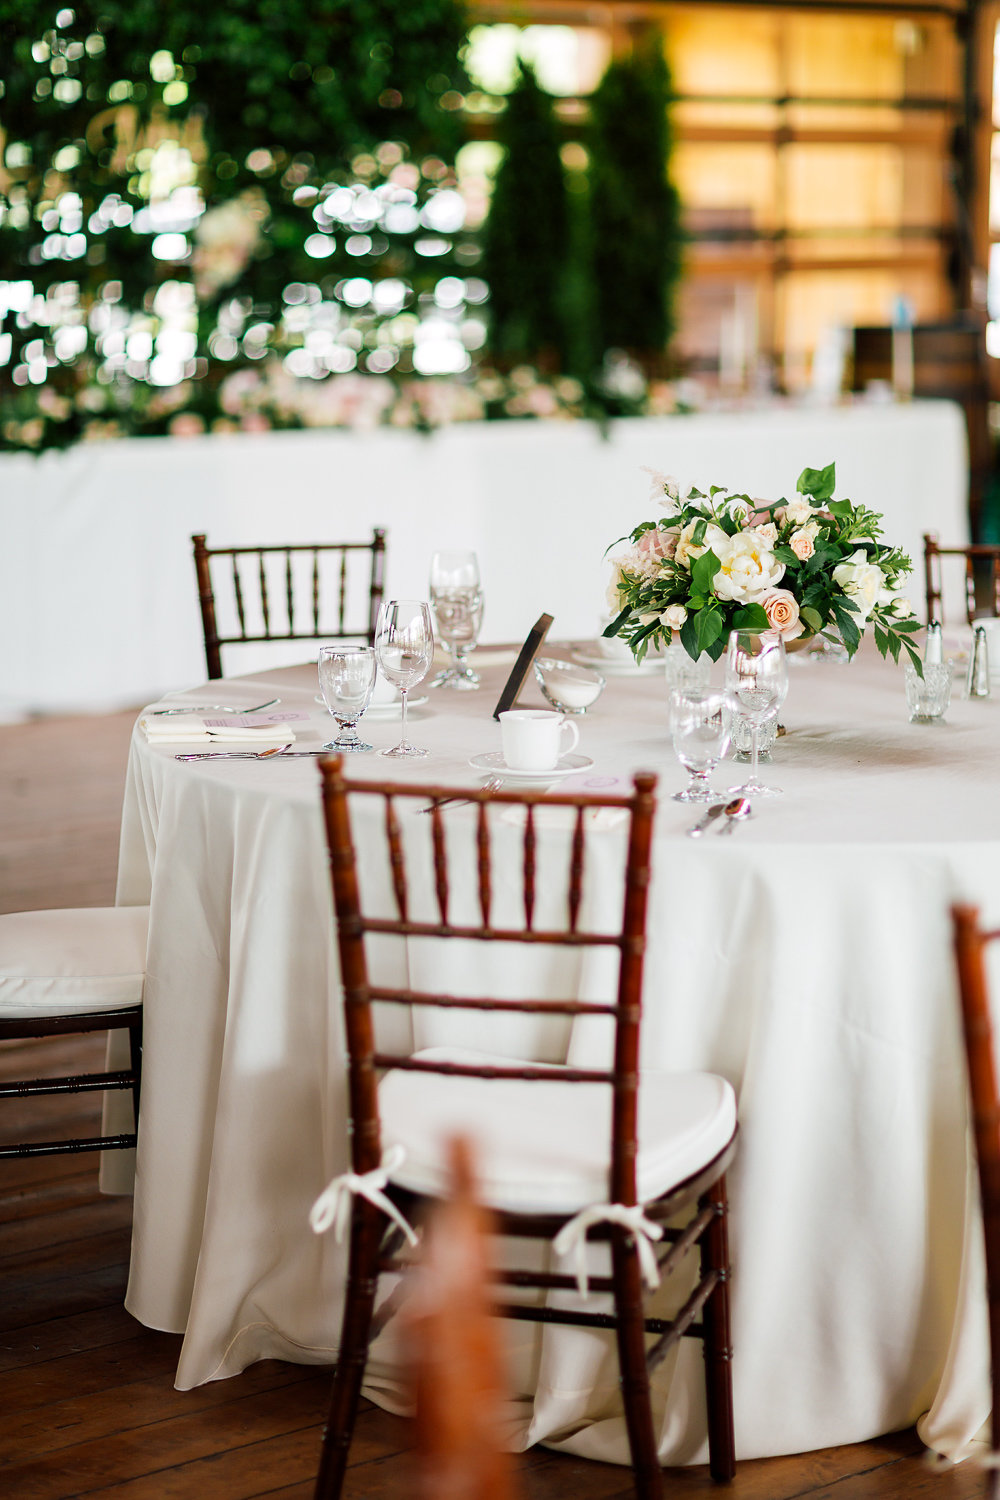 wedding reception tables - photo by Purple Tree Photography http://ruffledblog.com/charming-wine-country-wedding-at-kurtz-orchard